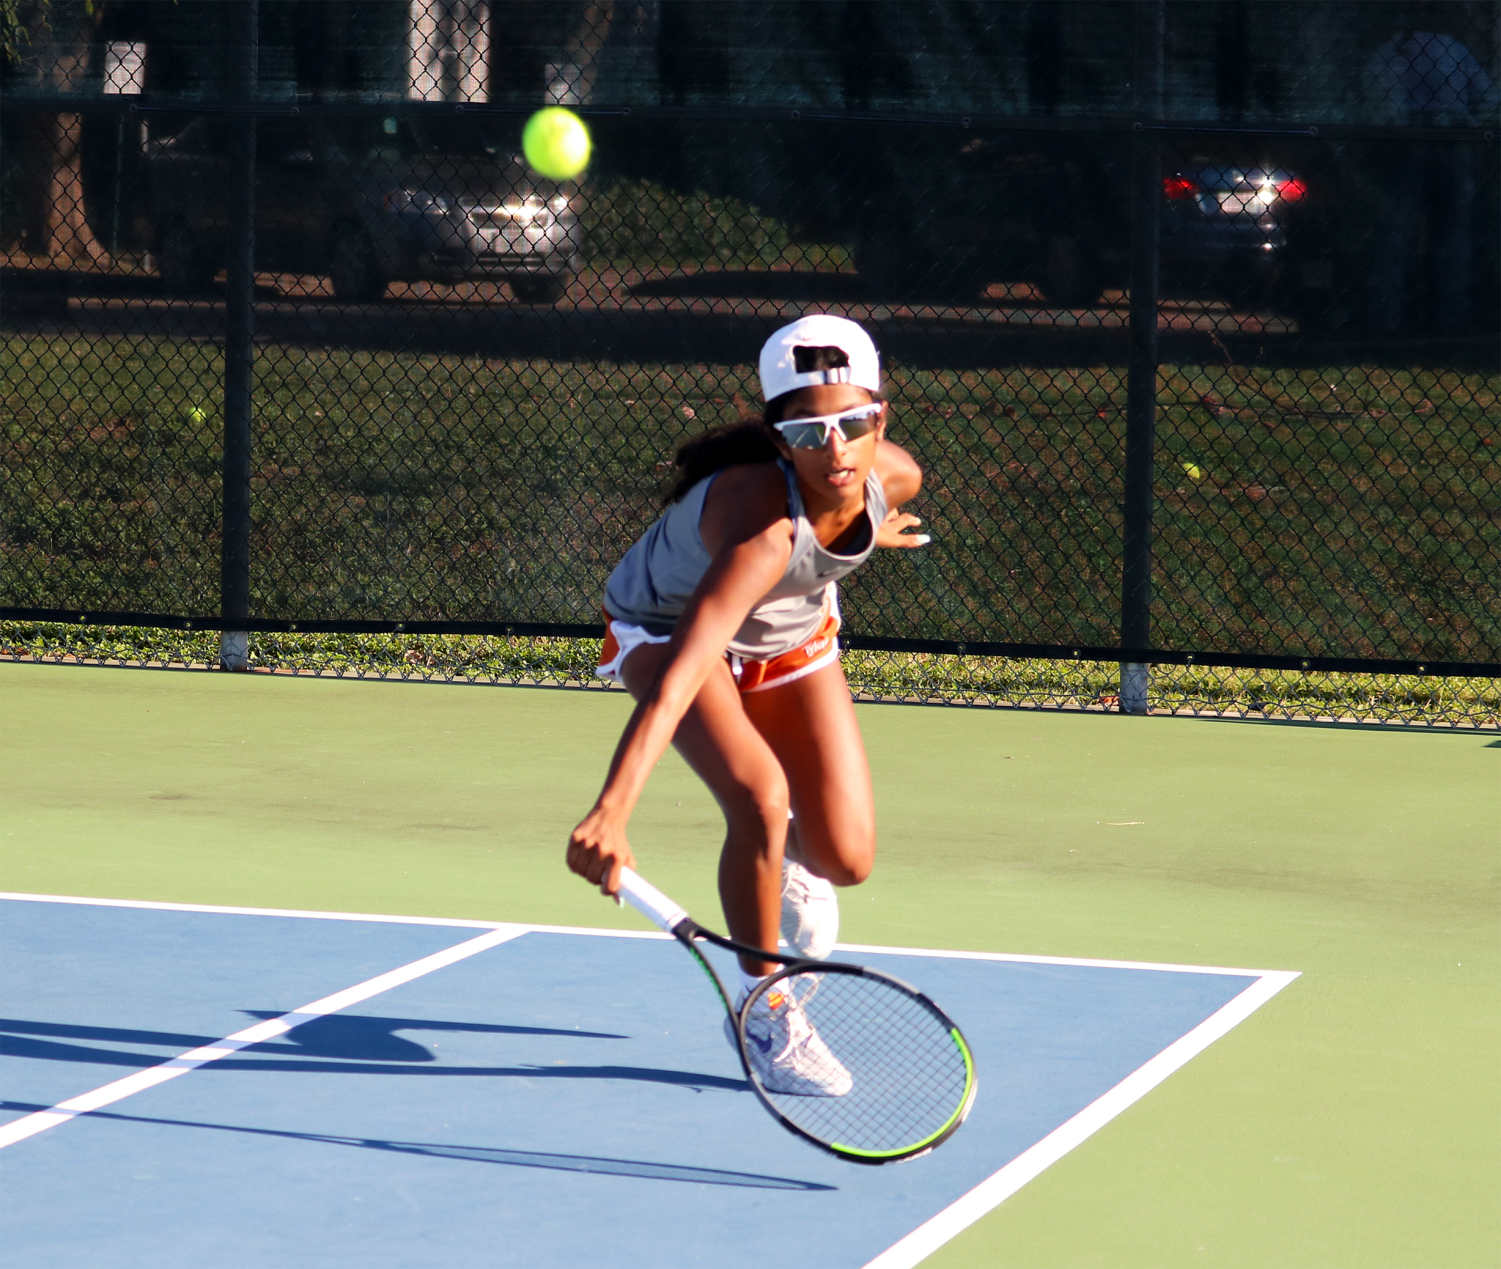 Clearing+McNeil+10-0%2C+Varsity+Tennis+Lands+Firm+District+Semi-Final+Win